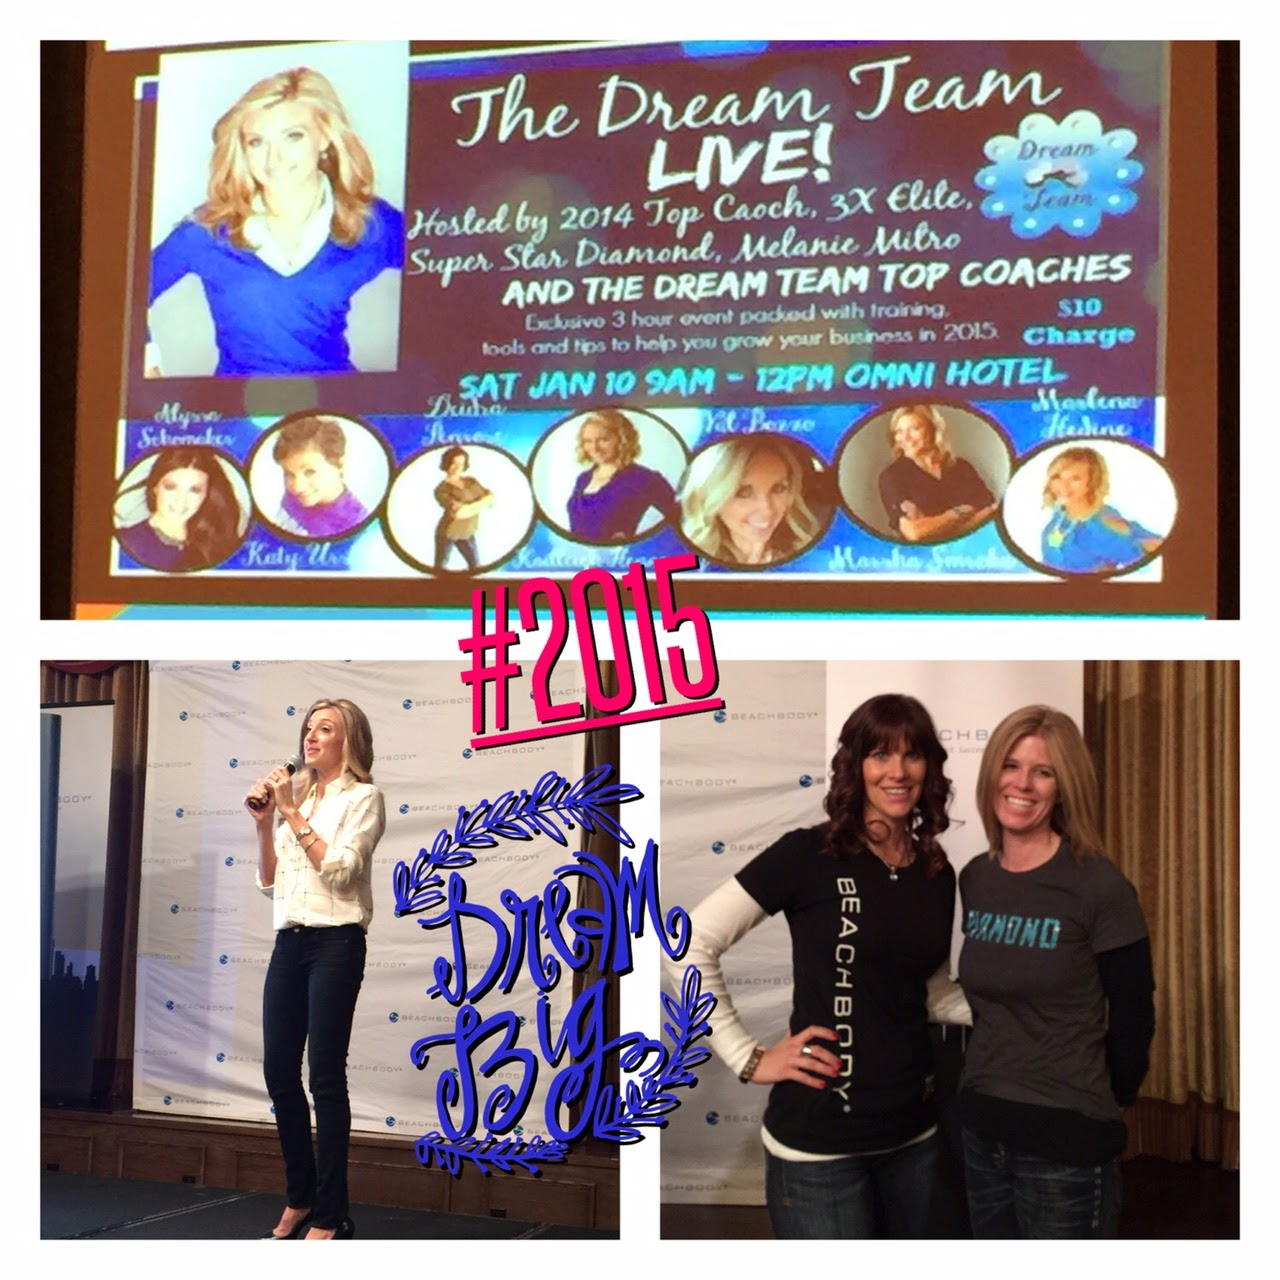 Super Staurday, Beachbody.  Celebration with Melanie Mitro and the Dream Team, www.HealthyFitFocused.com